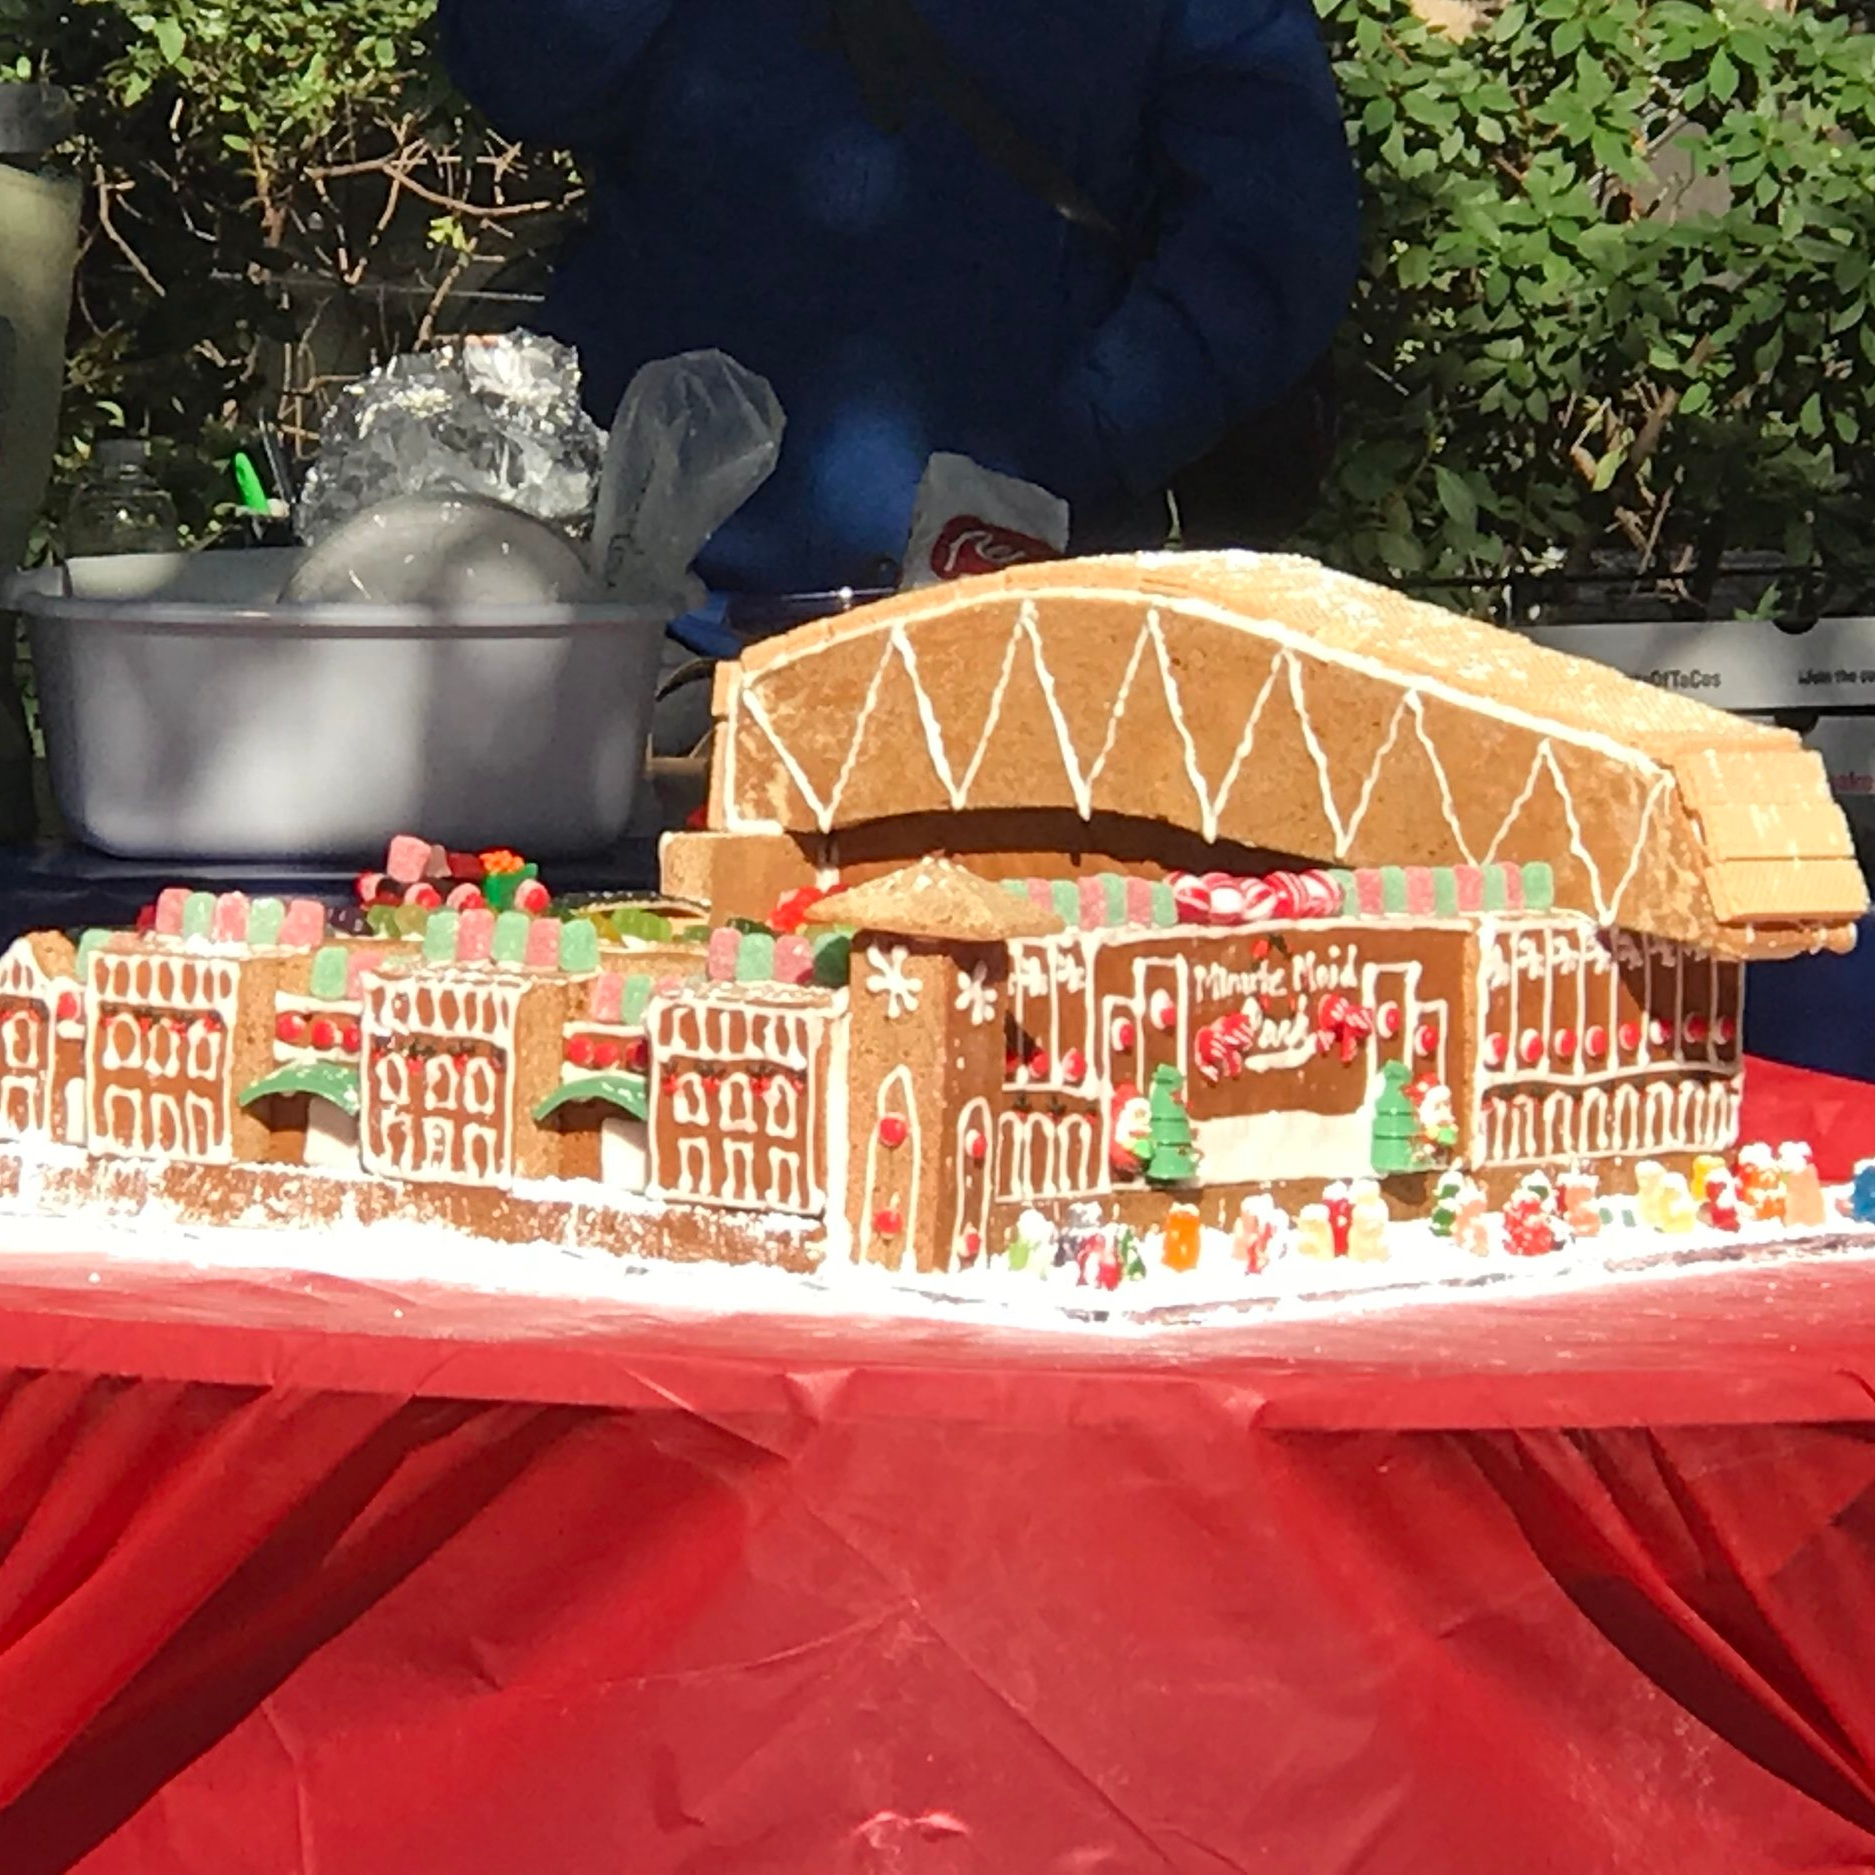 2017 AIA GINGERBREAD BUILD-OFF - Goree Architects WINNER of Best Houston-Centric theme!